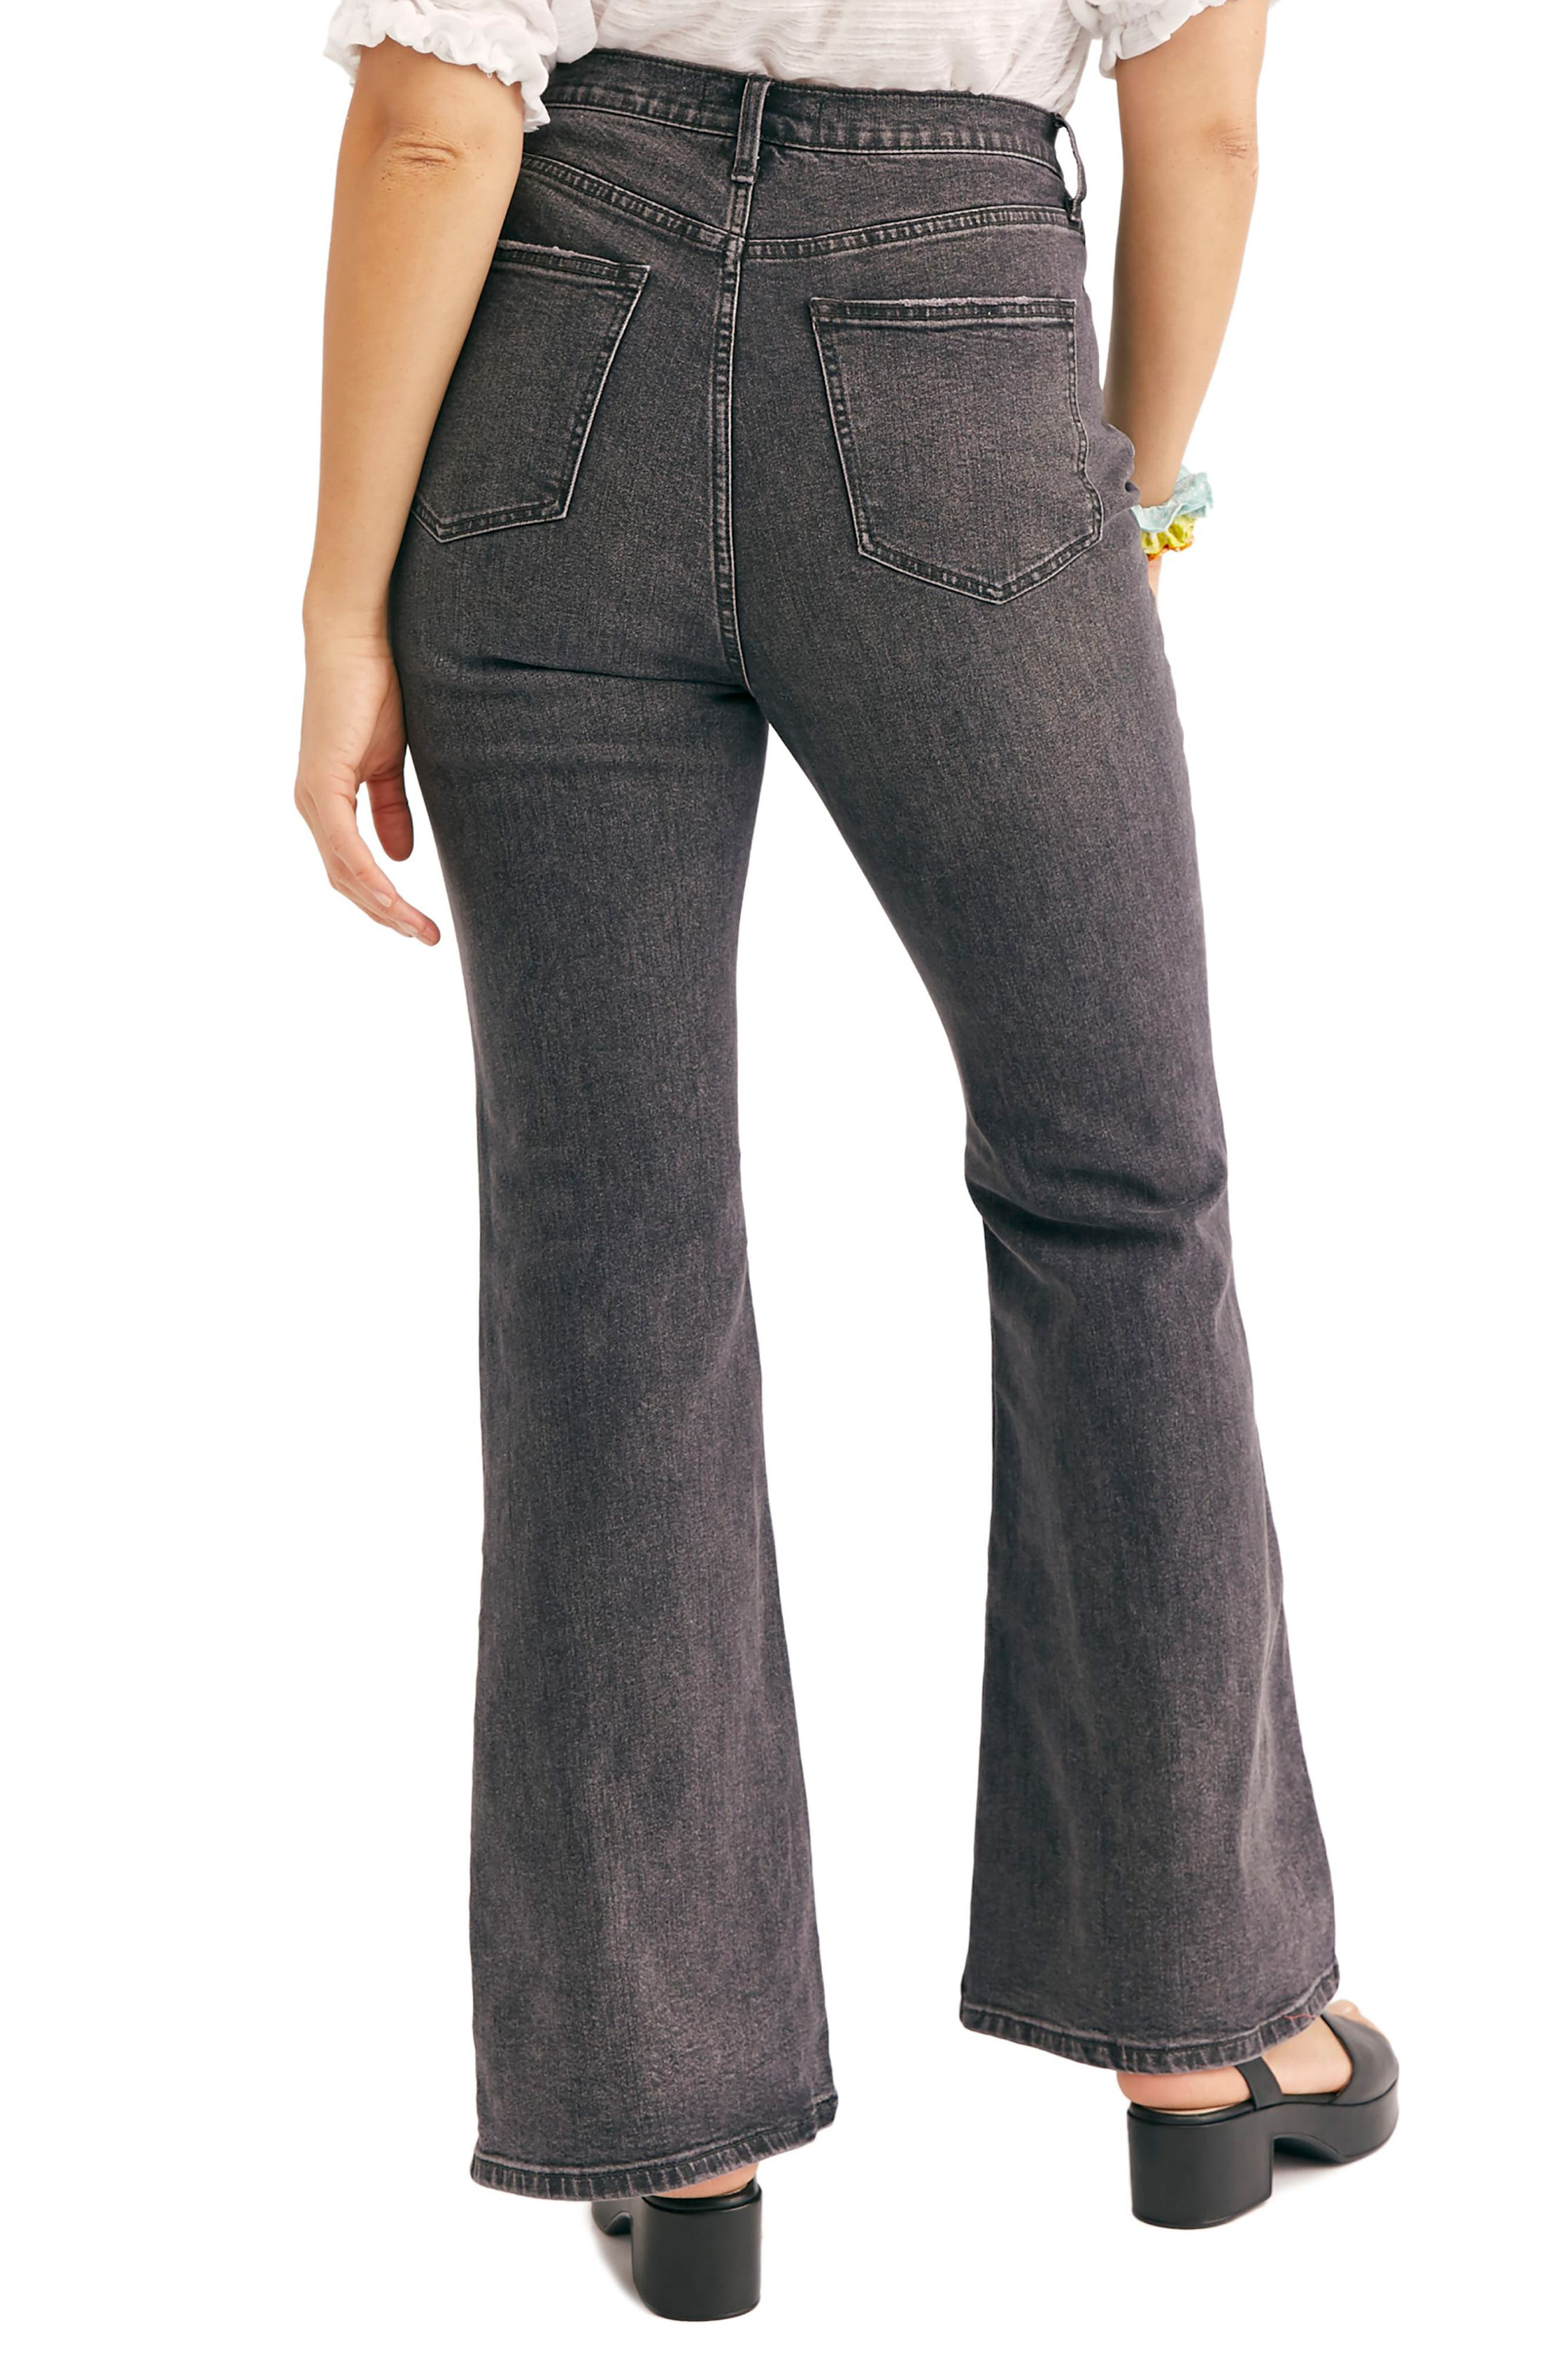 FREE PEOPLE, CRVY by Free People Robin High Waist Flare Jeans, Alternate thumbnail 2, color, BLACK